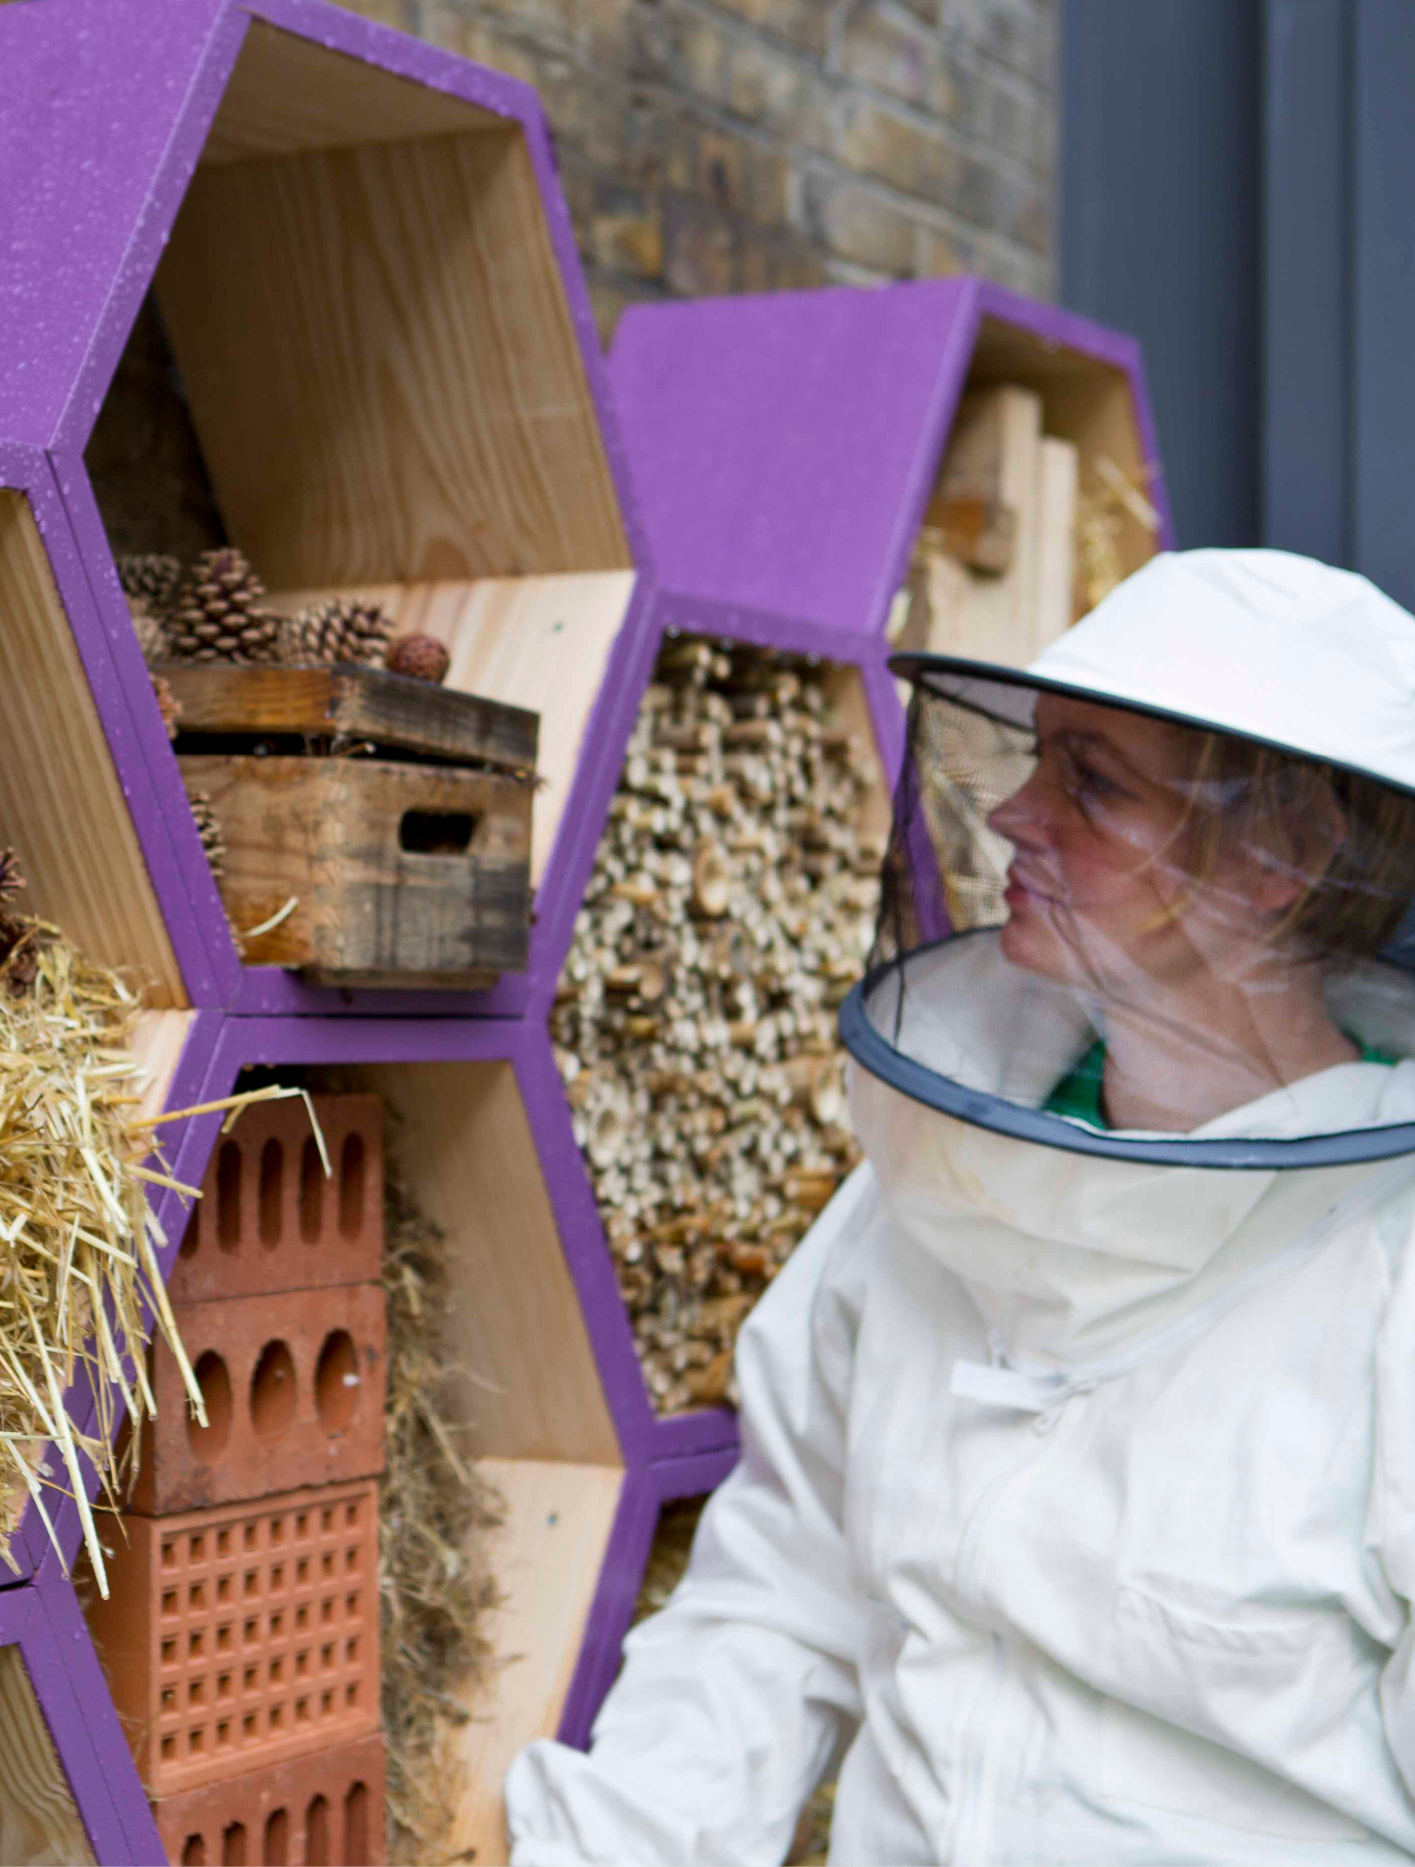 St Ermin's bee hotel